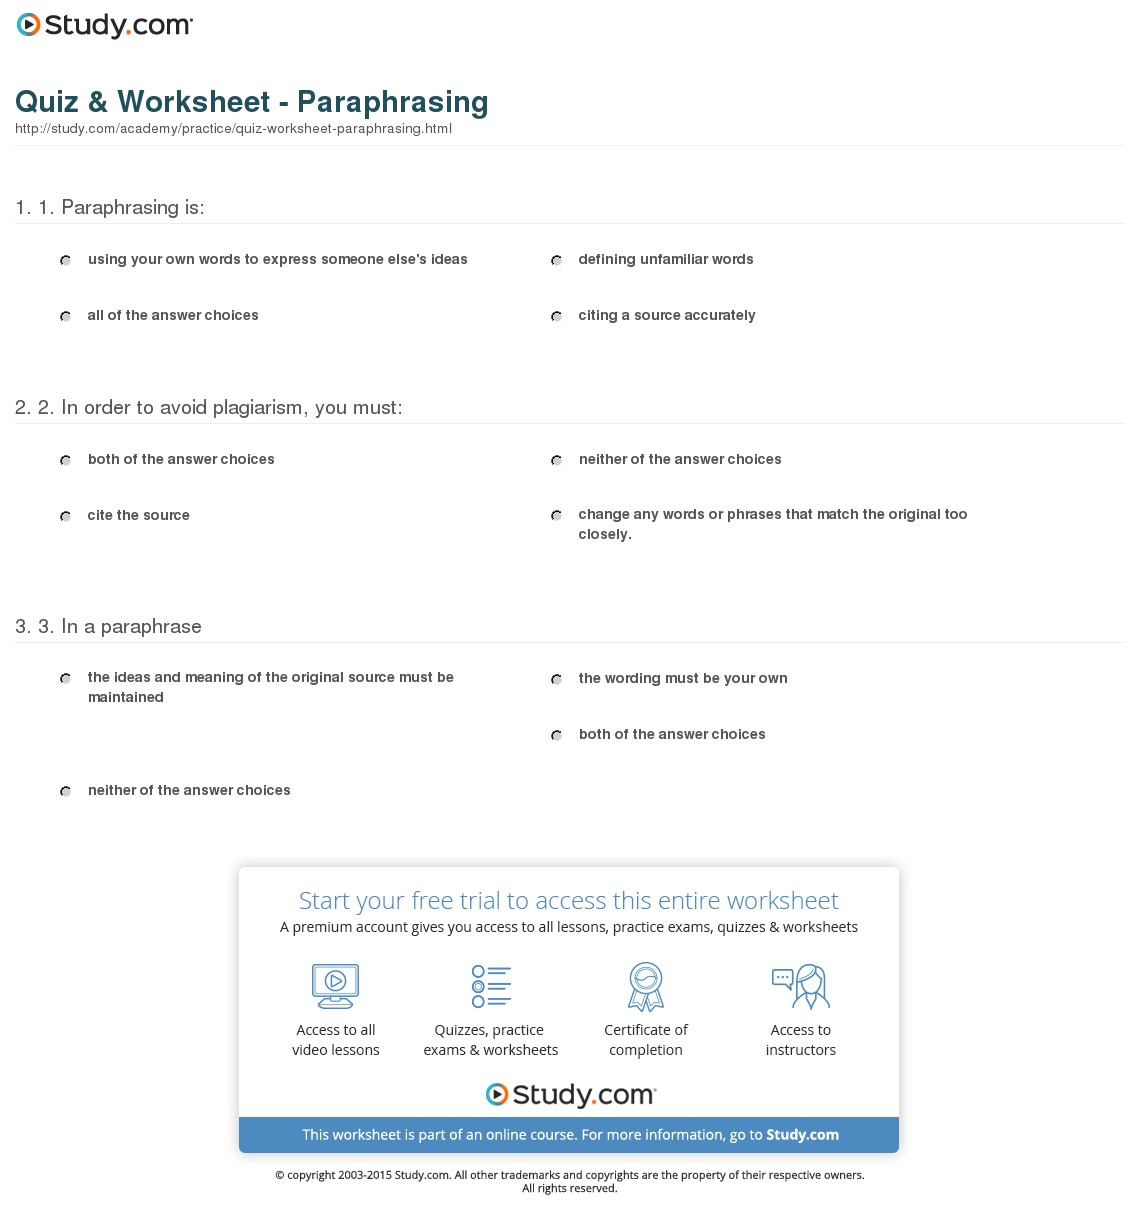 Quiz & Worksheet - Paraphrasing | Study | Printable Paraphrase Practice Worksheet